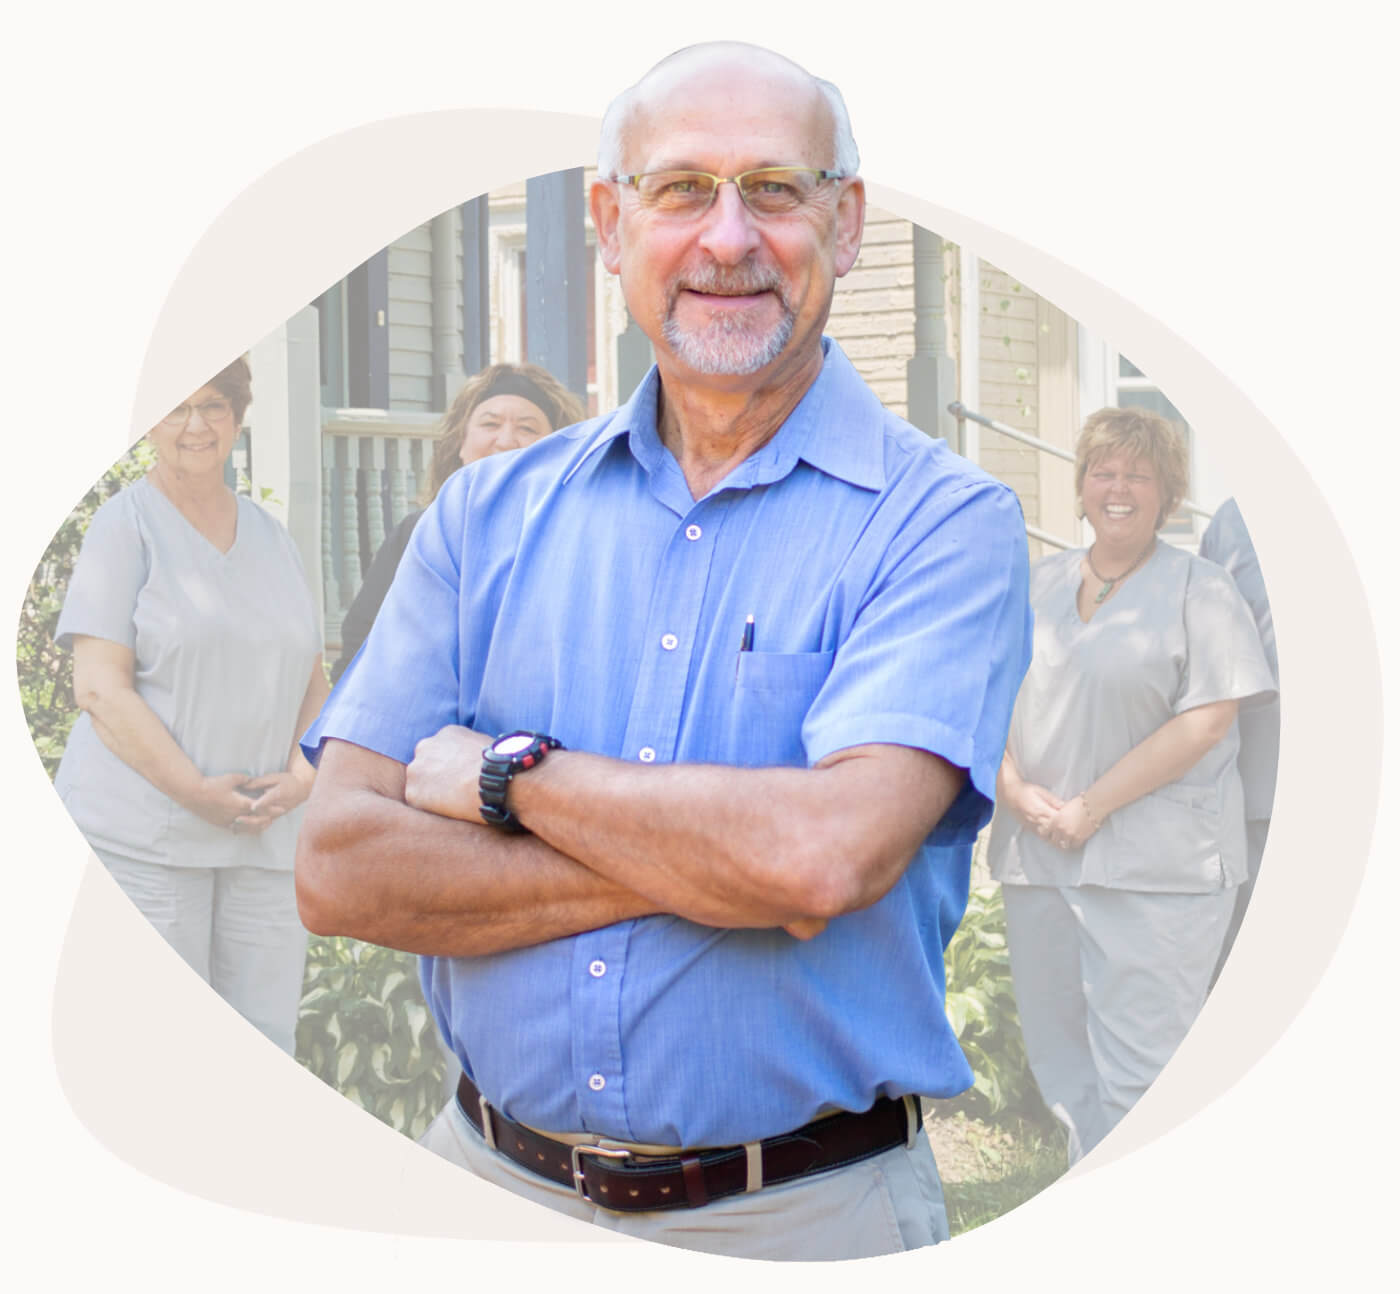 Dr. Don Metnes welcomes you!